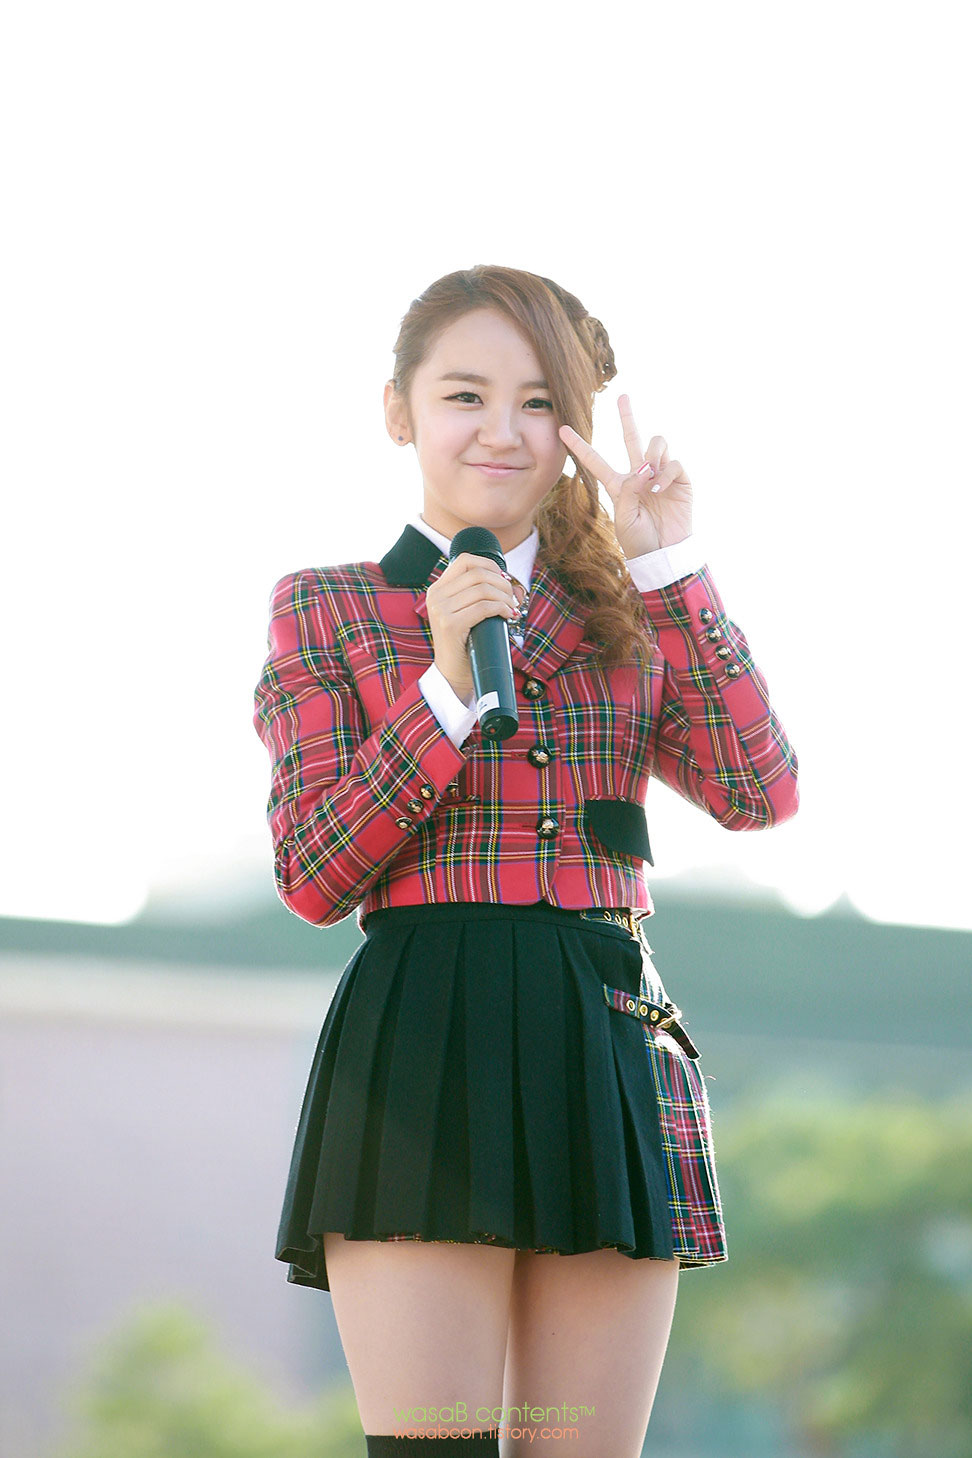 nca kpop singer - photo #38